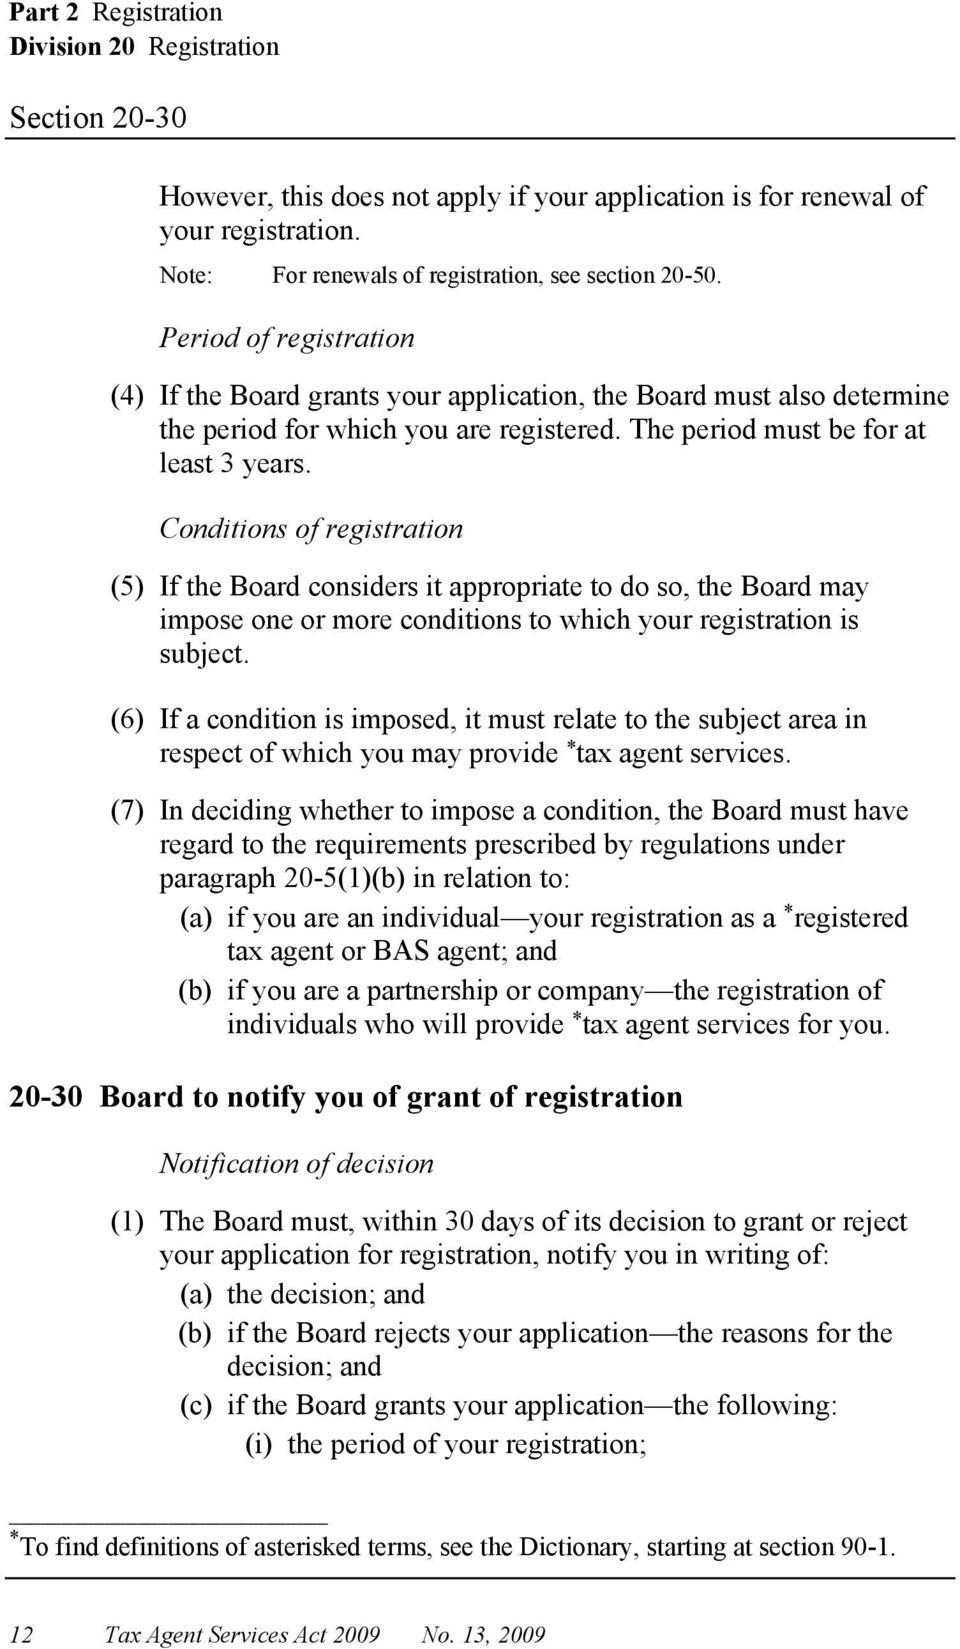 Conditions of registration (5) If the Board considers it appropriate to do so, the Board may impose one or more conditions to which your registration is subject.